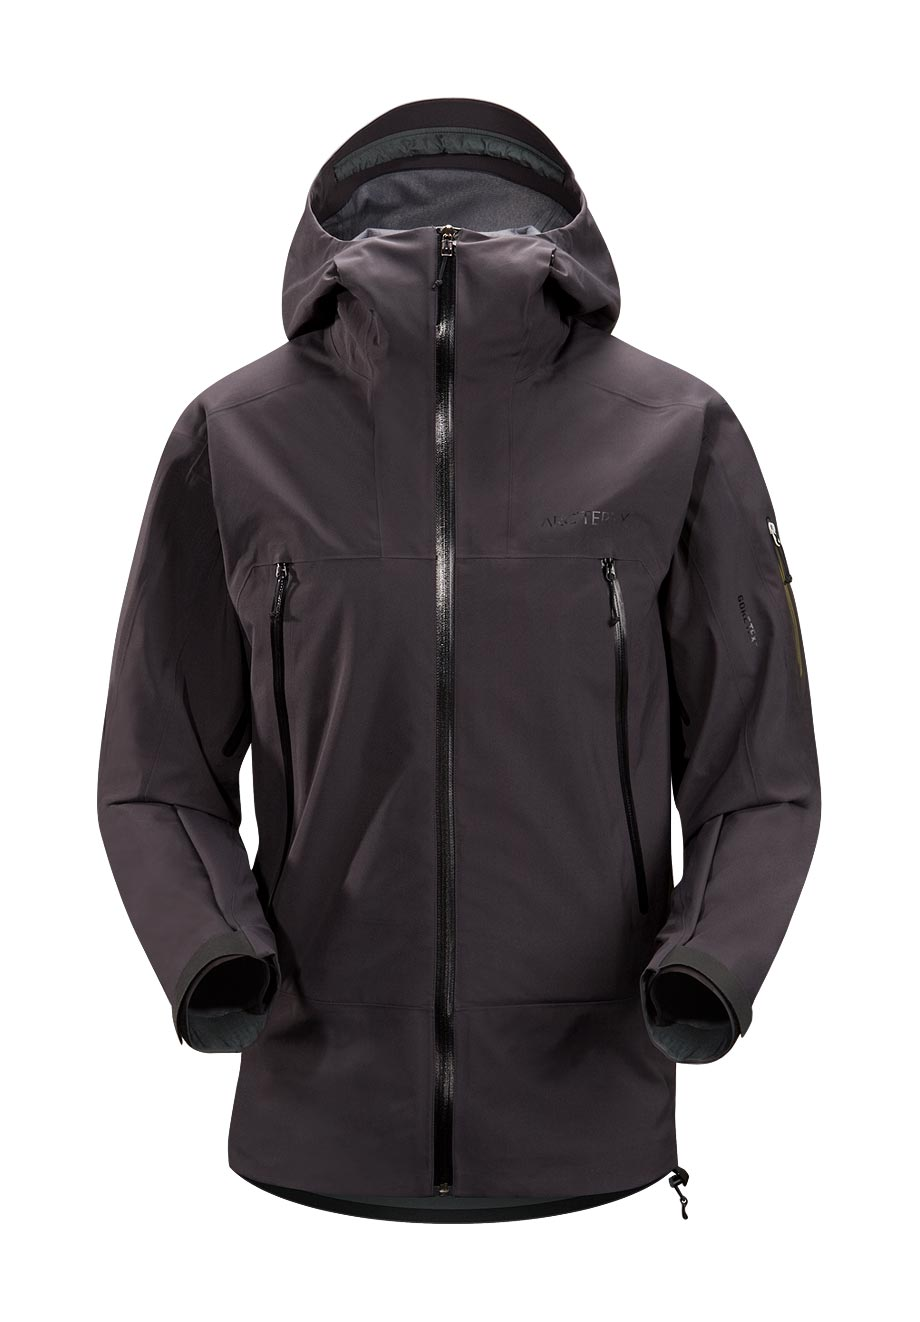 Arcteryx Jackets Men Carbon Copy Sabre SV Jacket